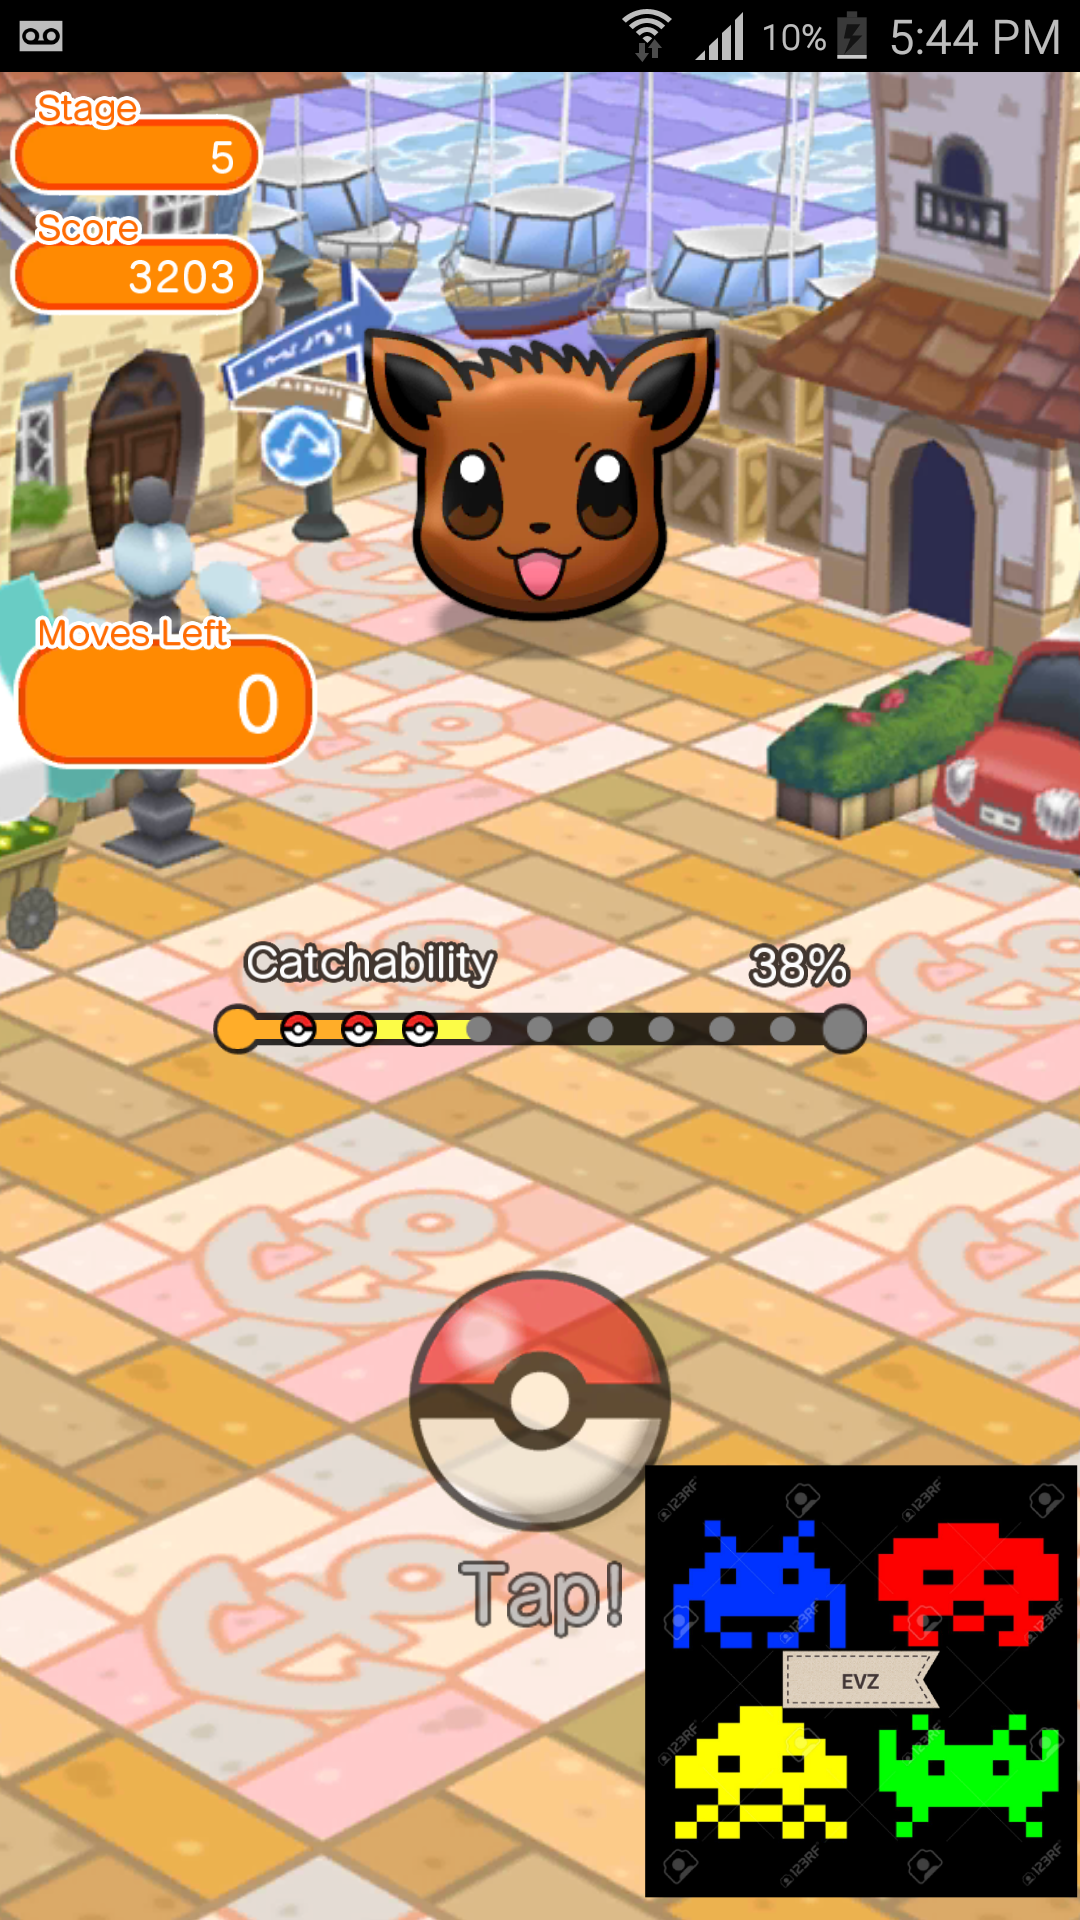 ministorm04: Pokemon Shuffle Mobile: Stage 005 (Android) 3,203 points on 2019-06-06 12:05:31